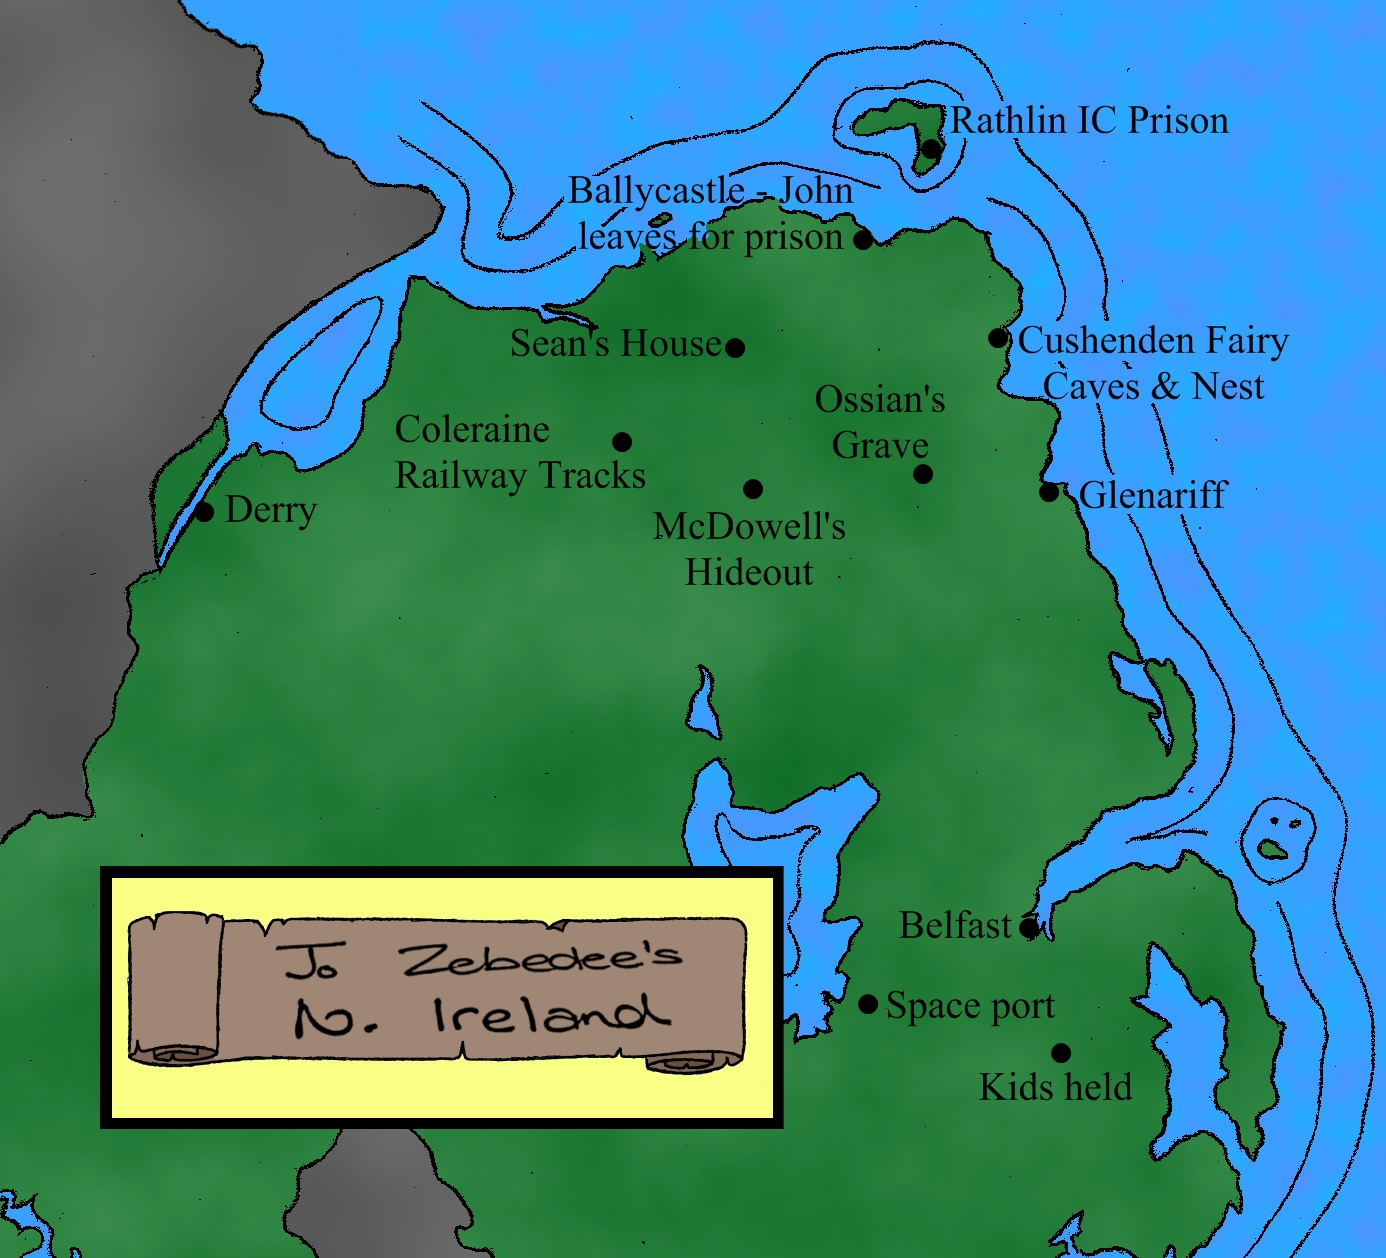 Jo Zebedee's Northern Ireland.jpg